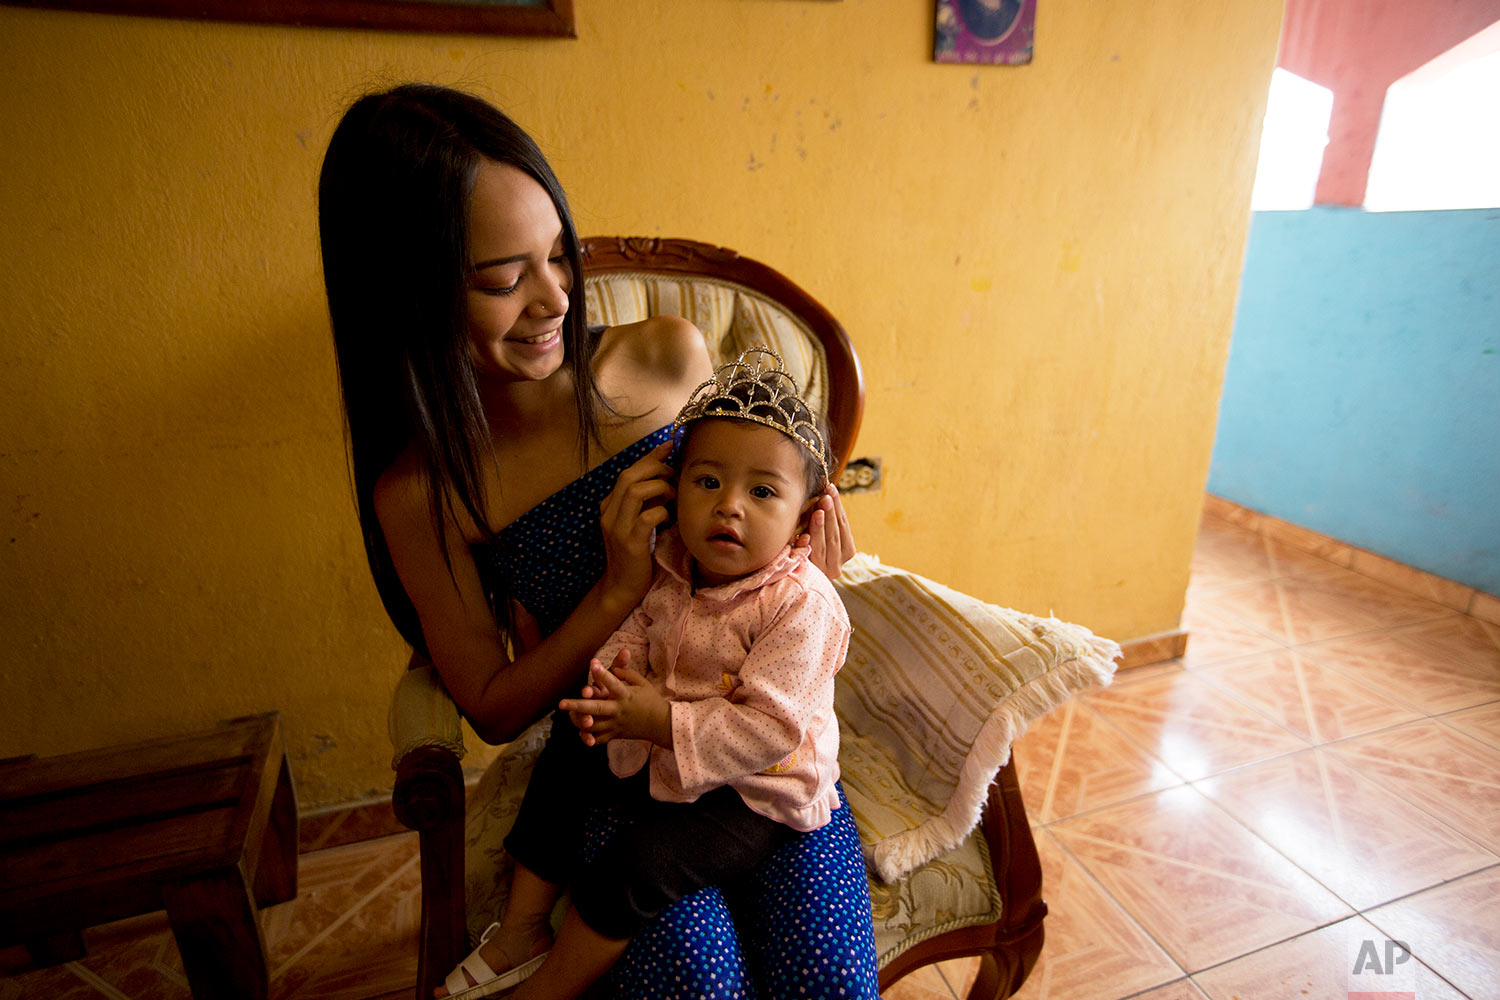 Johandrys Colls places a tiara on her niece Victoria at their home in a poor neighborhood on the outskirts of Caracas, Venezuela, July 1, 2018. Colls' parents have enrolled her in one of Venezuela's top modeling schools despite their modest income in hopes of transforming their daughter into a sought-after beauty queen. (AP Photo/Fernando Llano)